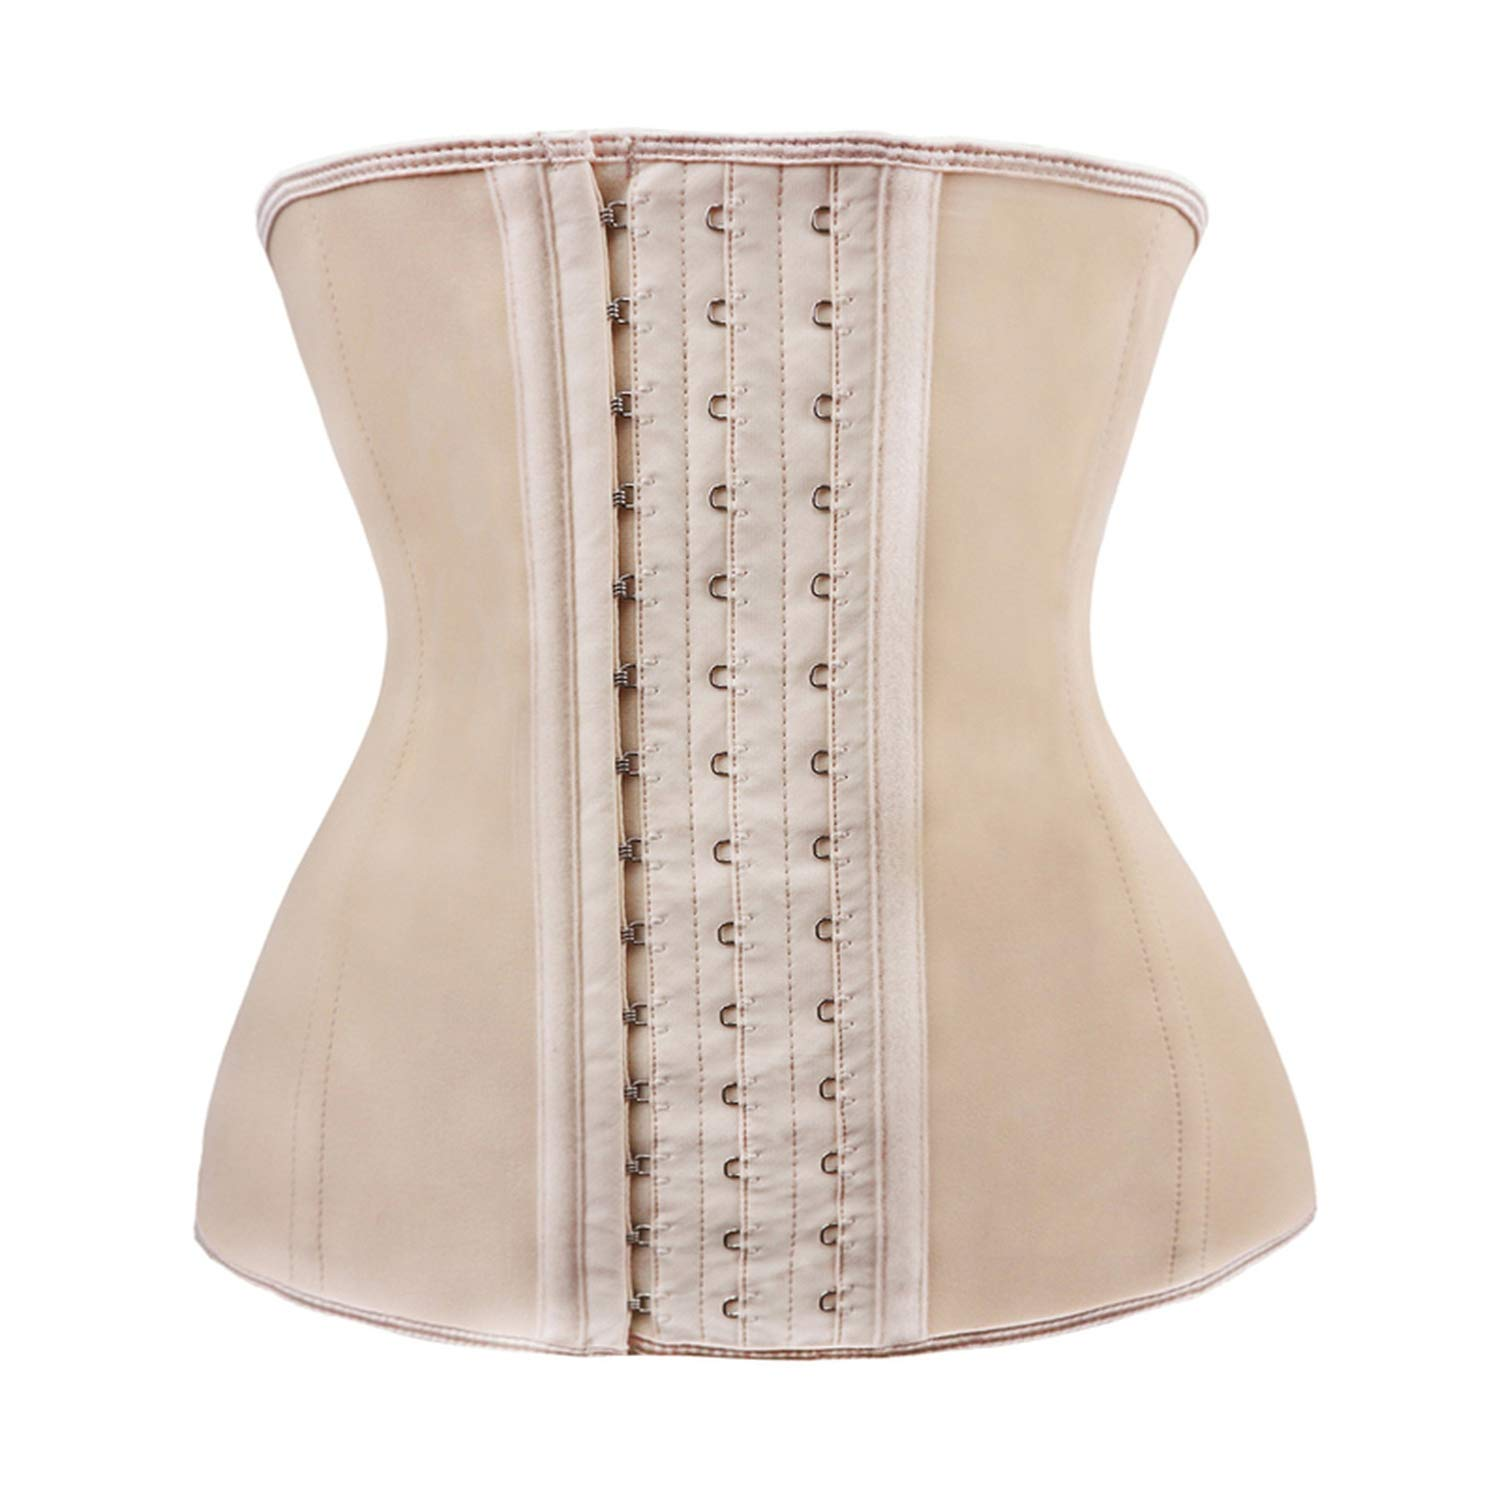 3ebbd8416a Amazon.com  Women Latex Body Shaper Shapewear Waist Trainer Lose Weight  Burning Slim Belt Corset Bustier